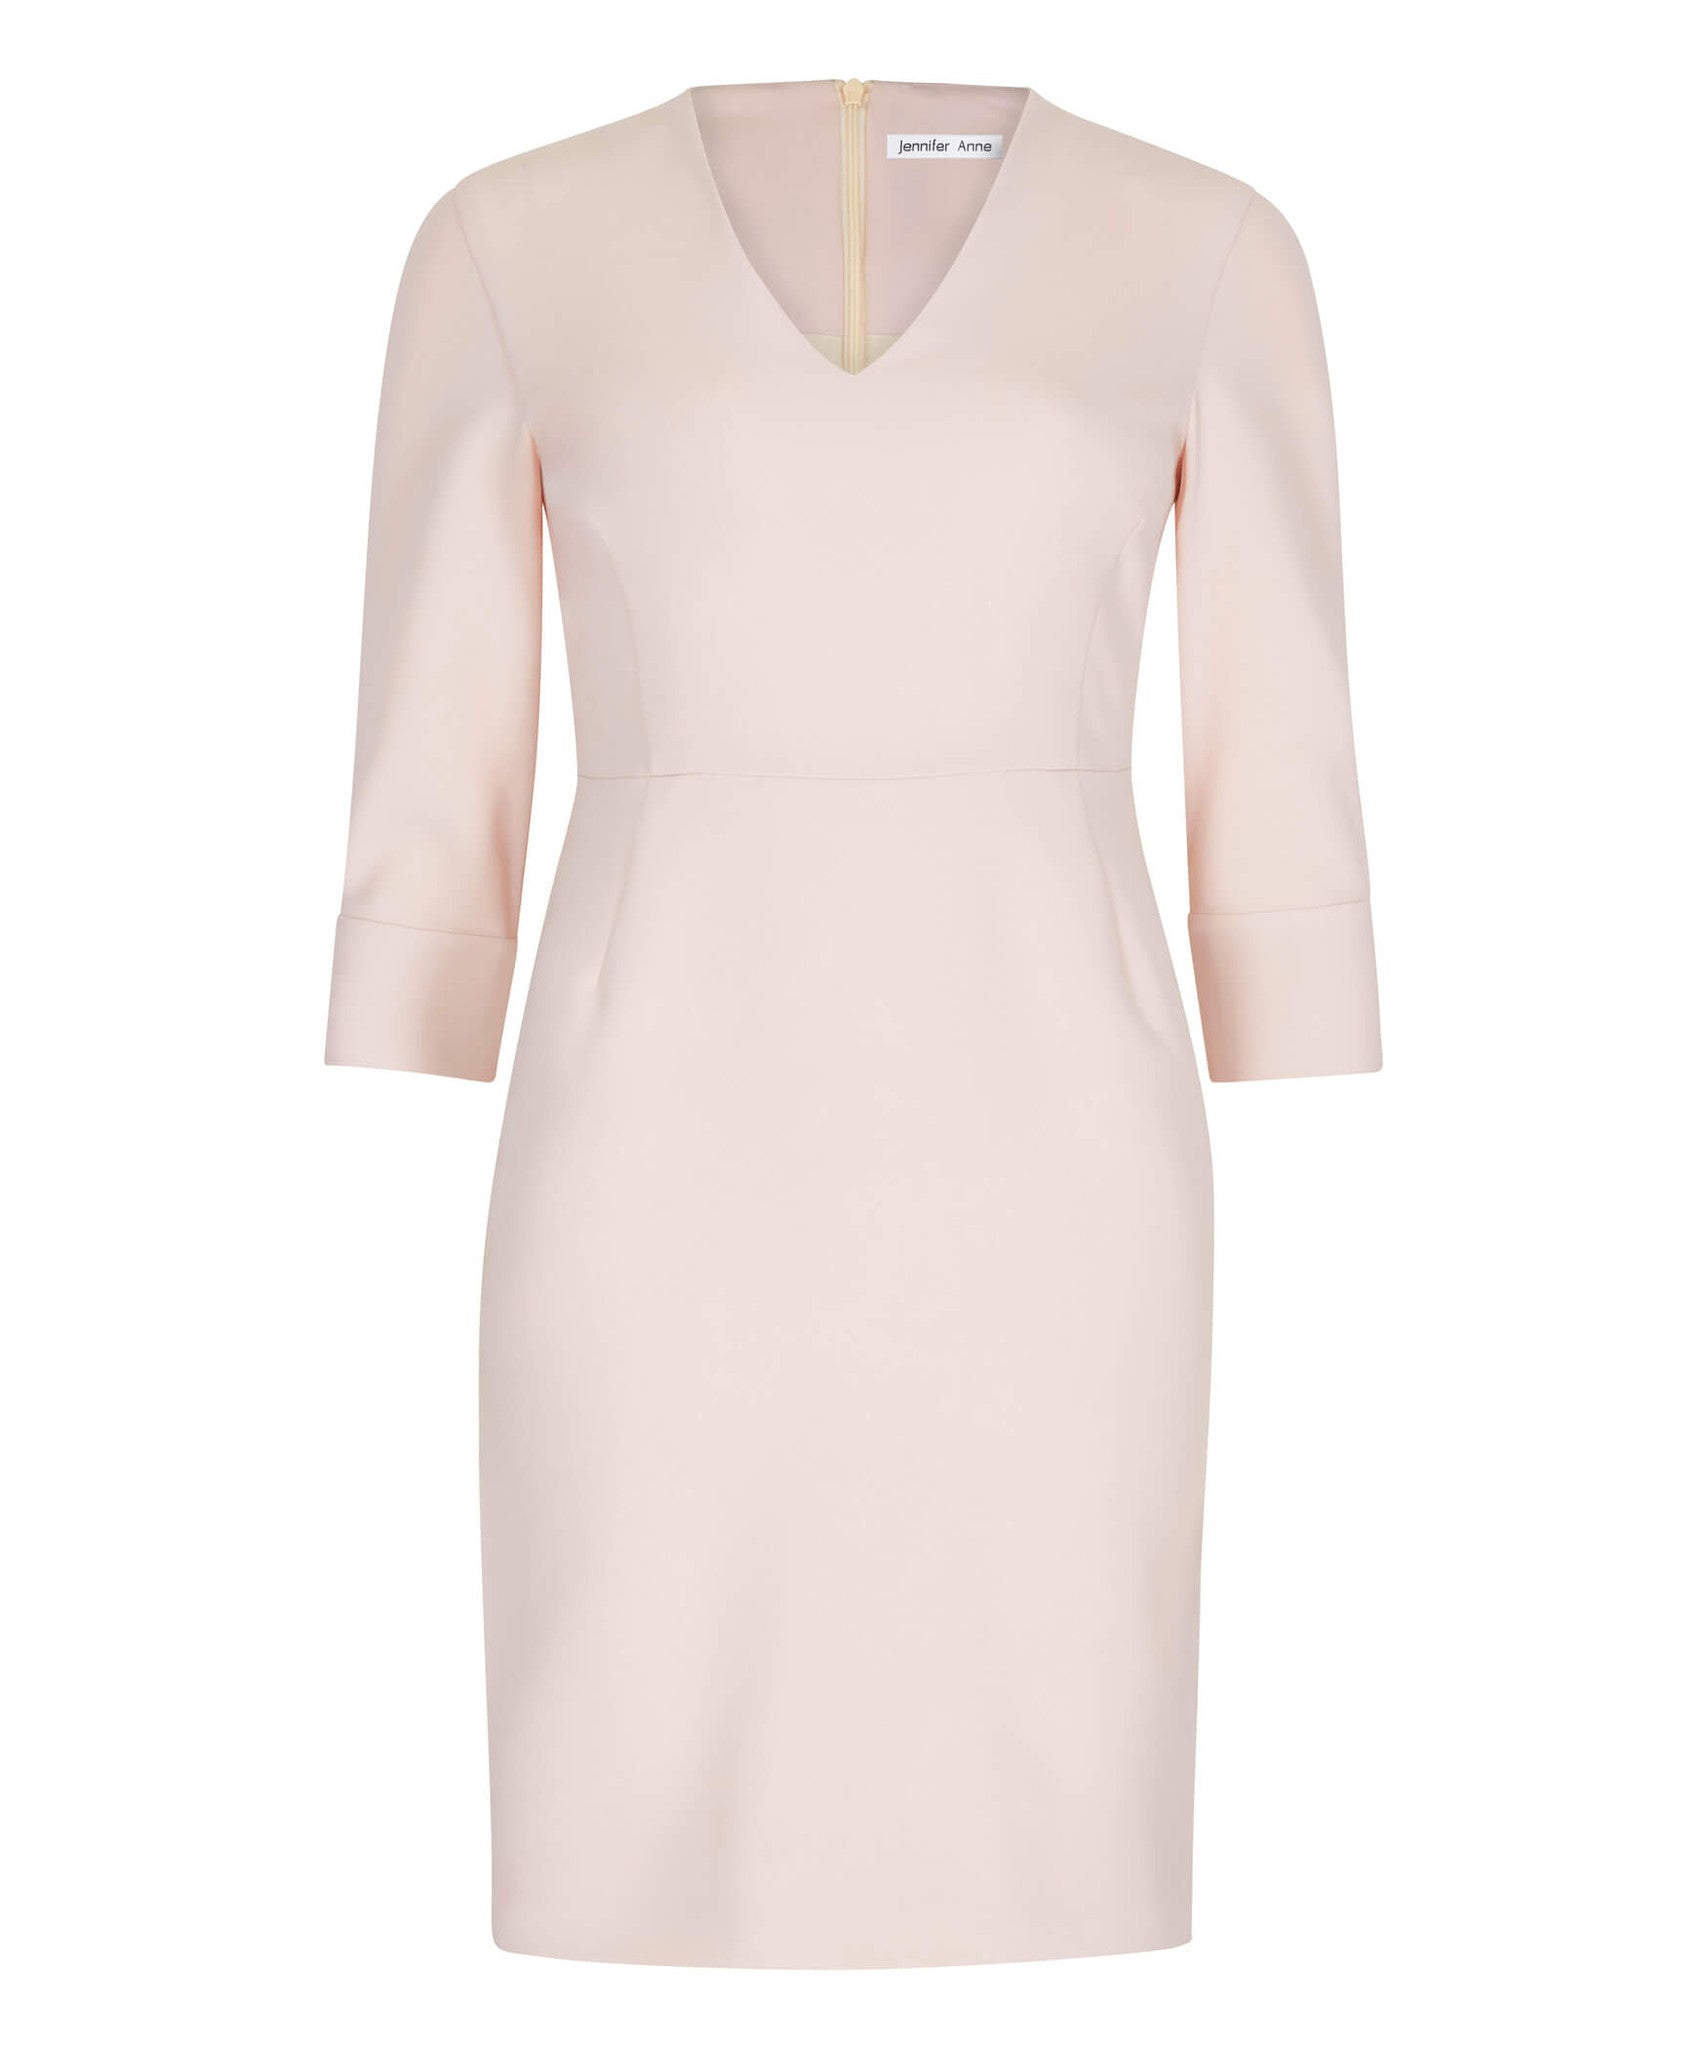 Petite Blush V-Neck Shift Dress - Sale! - Jennifer-Anne